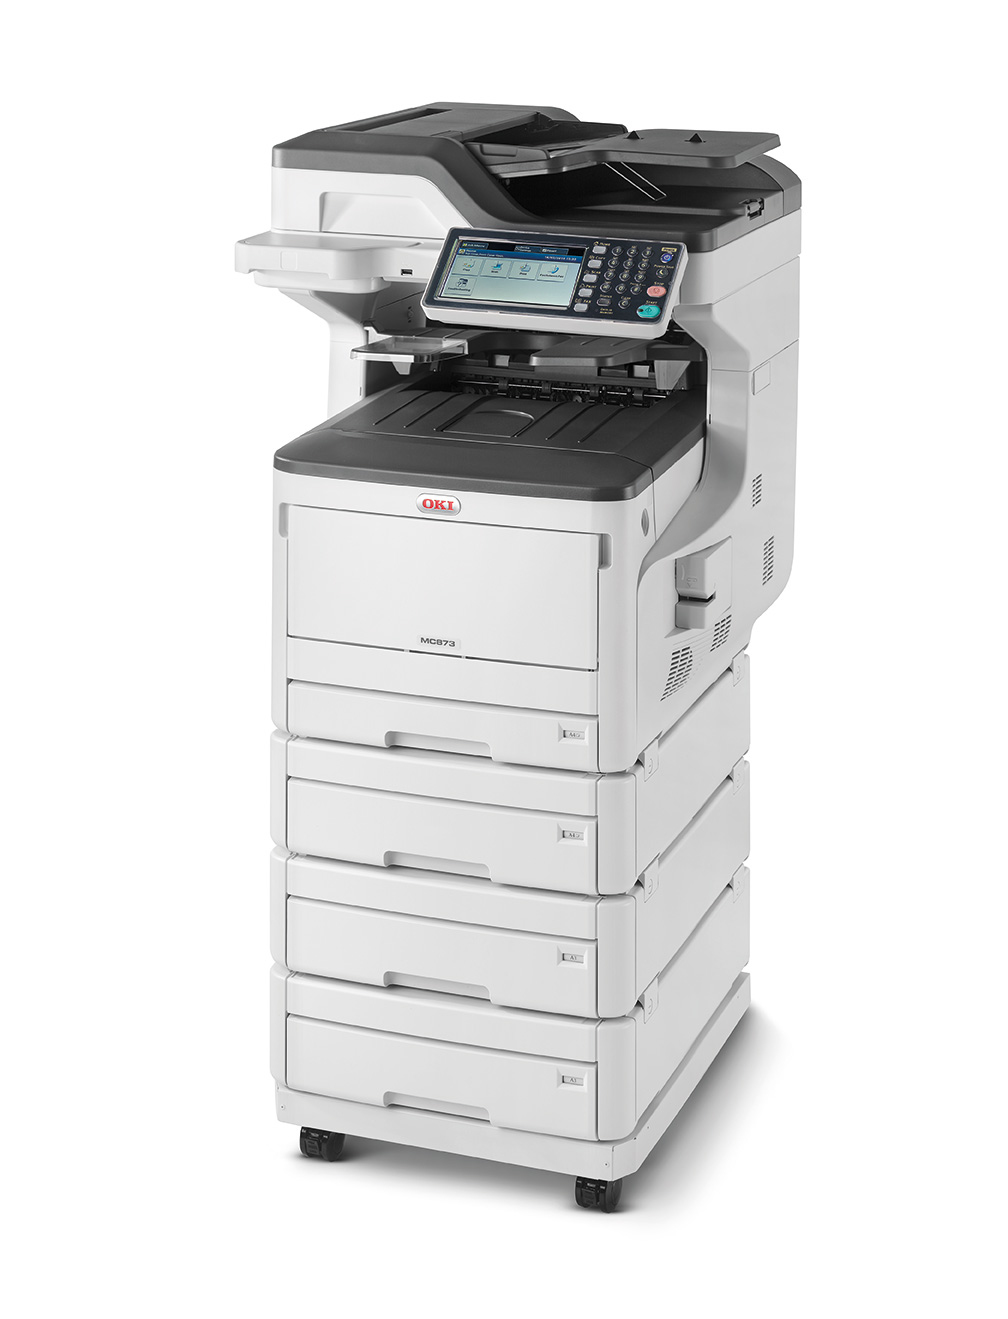 Mc873dnv - Color Multifunction Printer - LED - A3 - USB / Ethernet